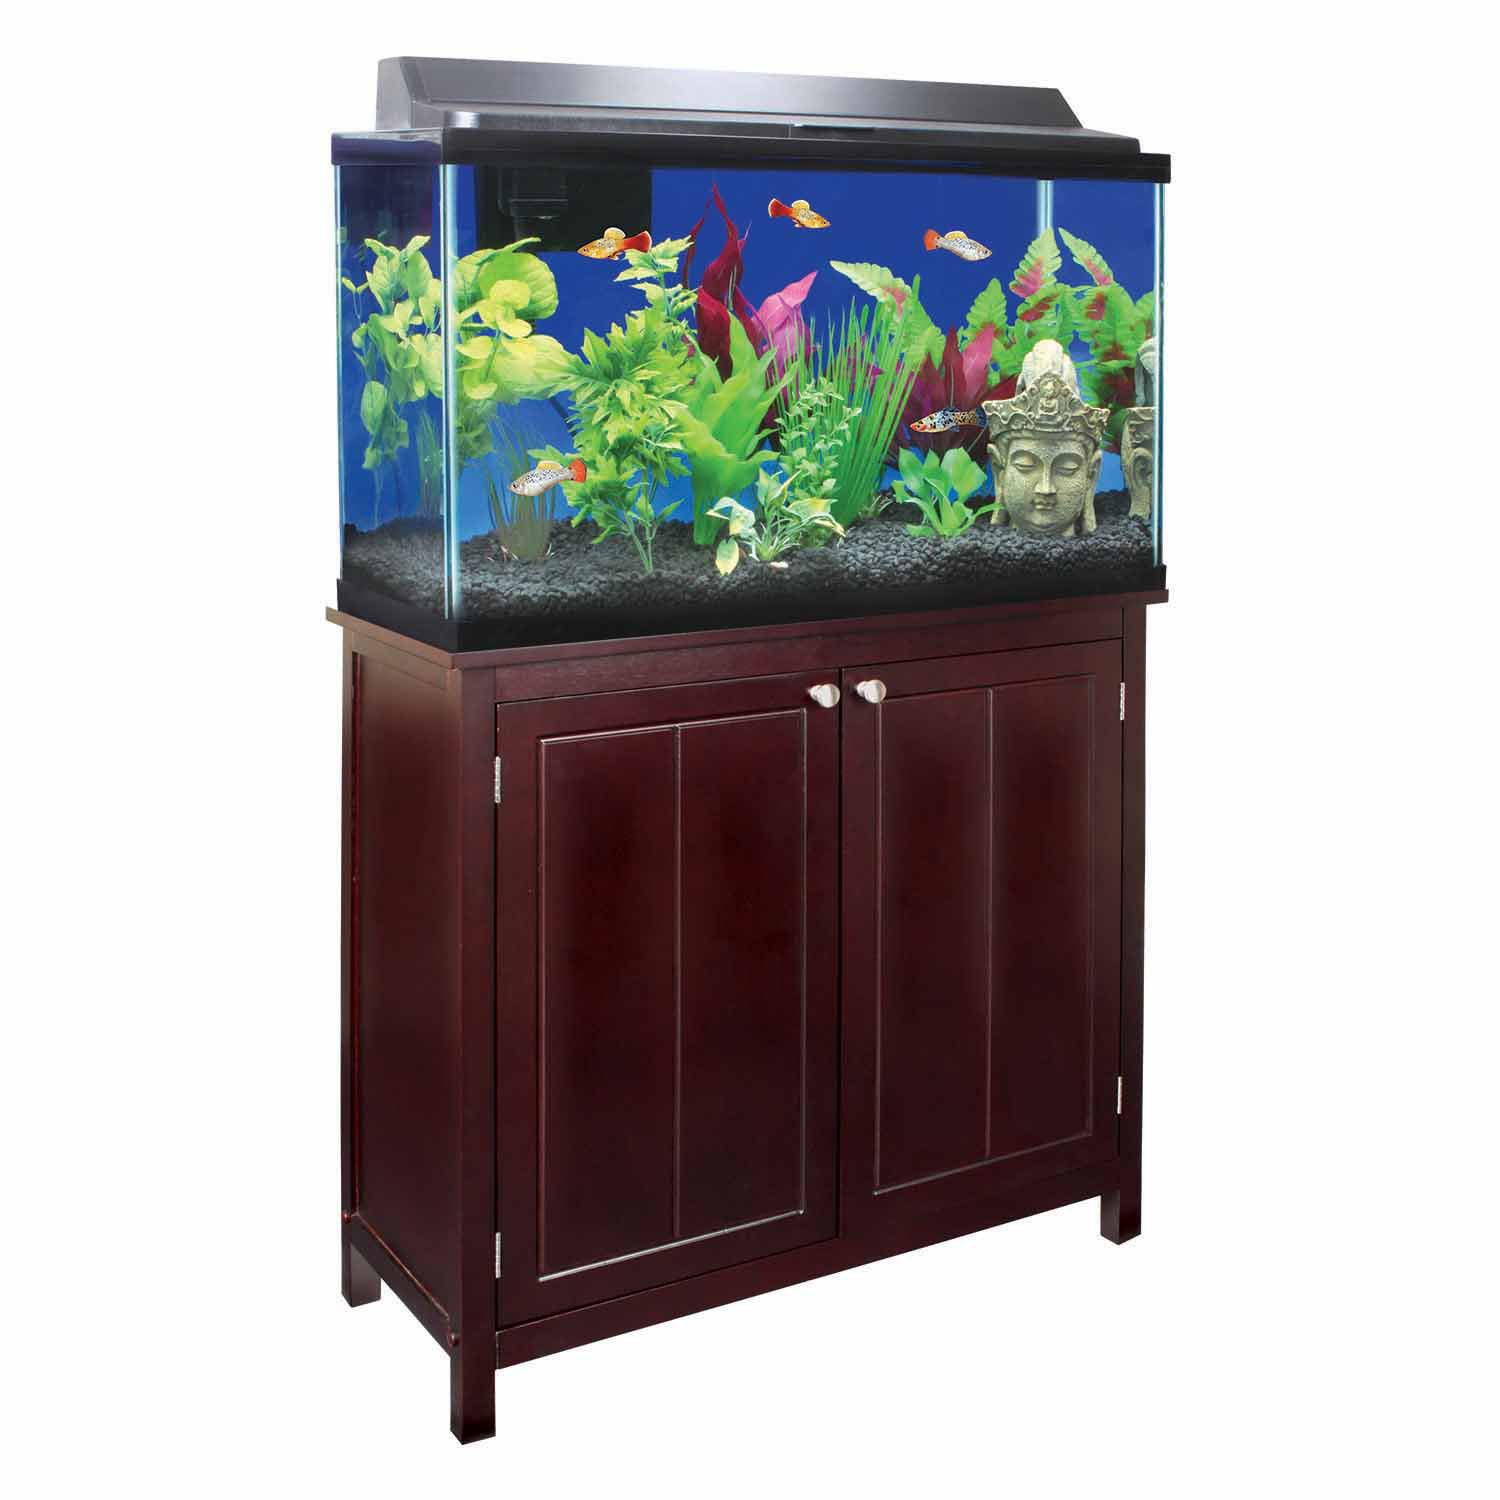 Petco Preferred Winston 29 Gallon Tank Stand, 12.5